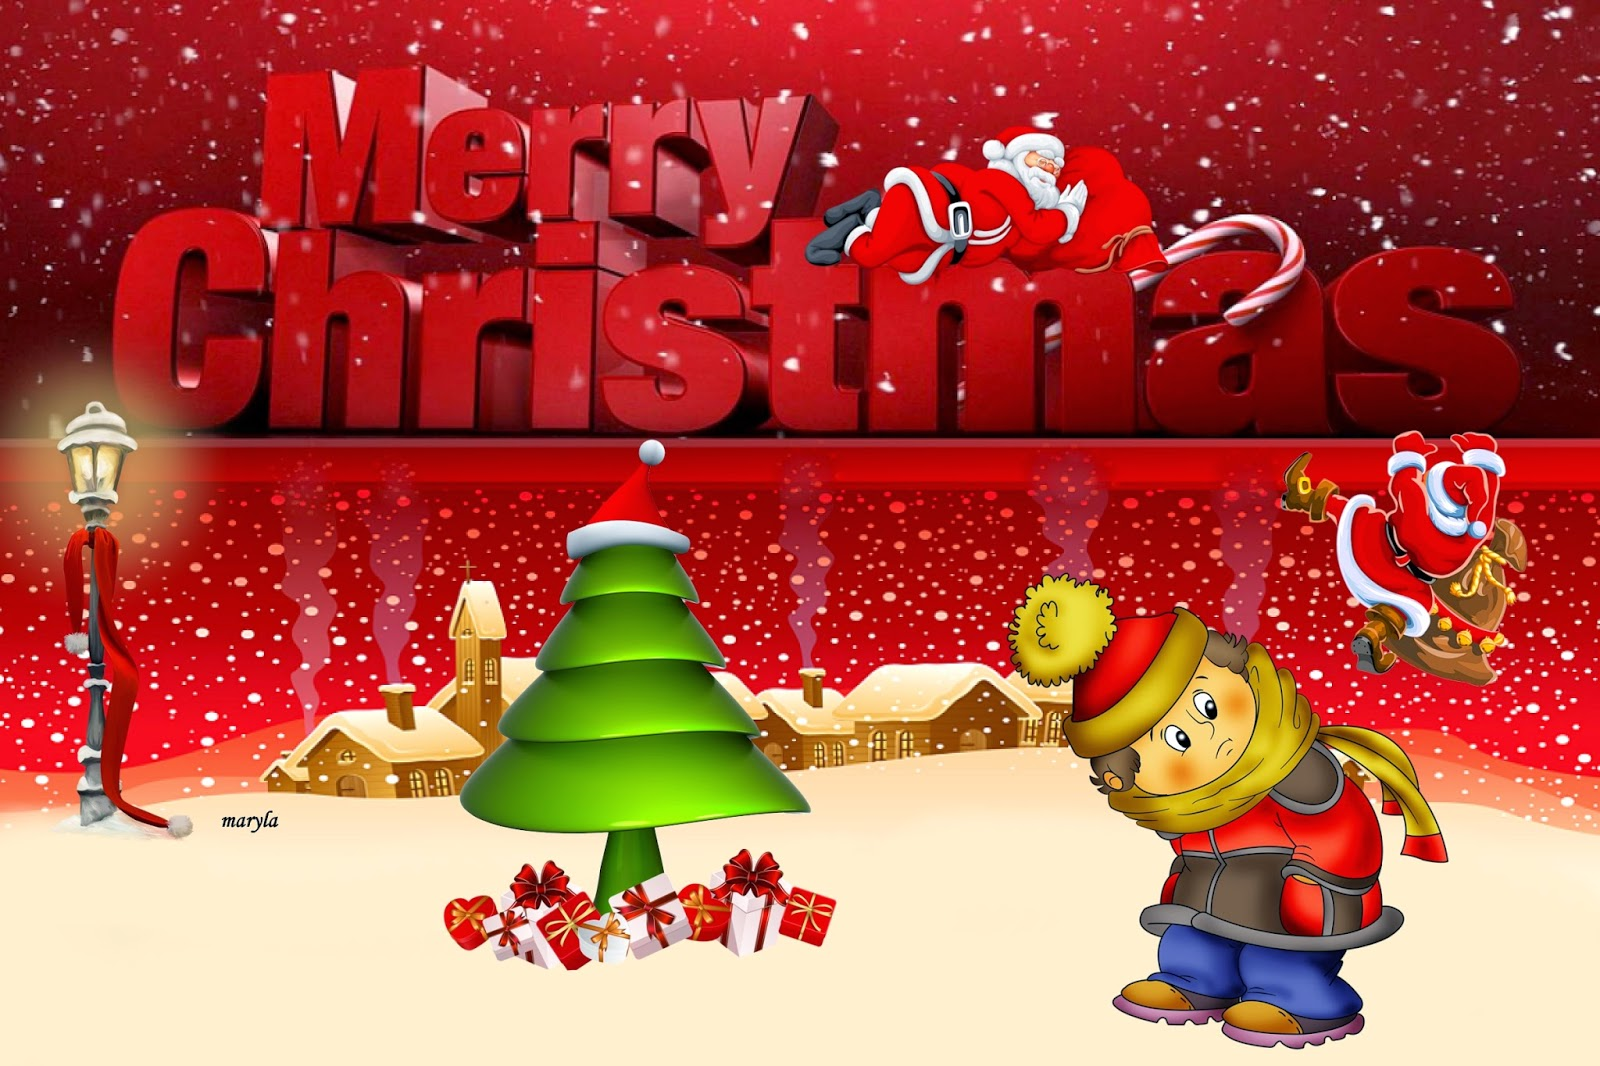 Merry-Christmas-3d-text-cartoon-animation-wishes-greetings-message-card-2400x1600.jpg